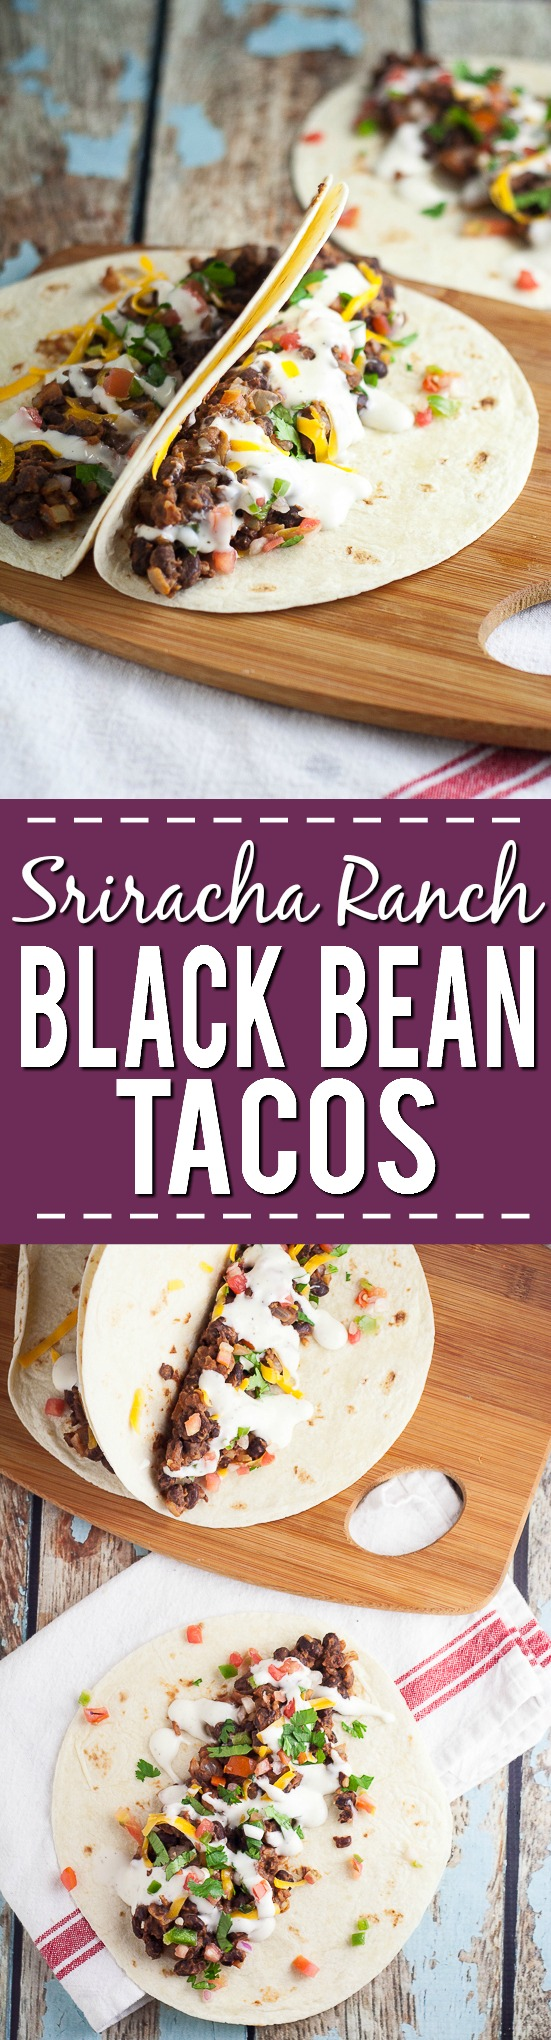 Sriracha Ranch Black Bean Tacos Recipe -Spicy and creamy Sriracha Ranch Black Bean Tacos are way better than your average black bean tacos. They make a fabulous meatless family dinner.